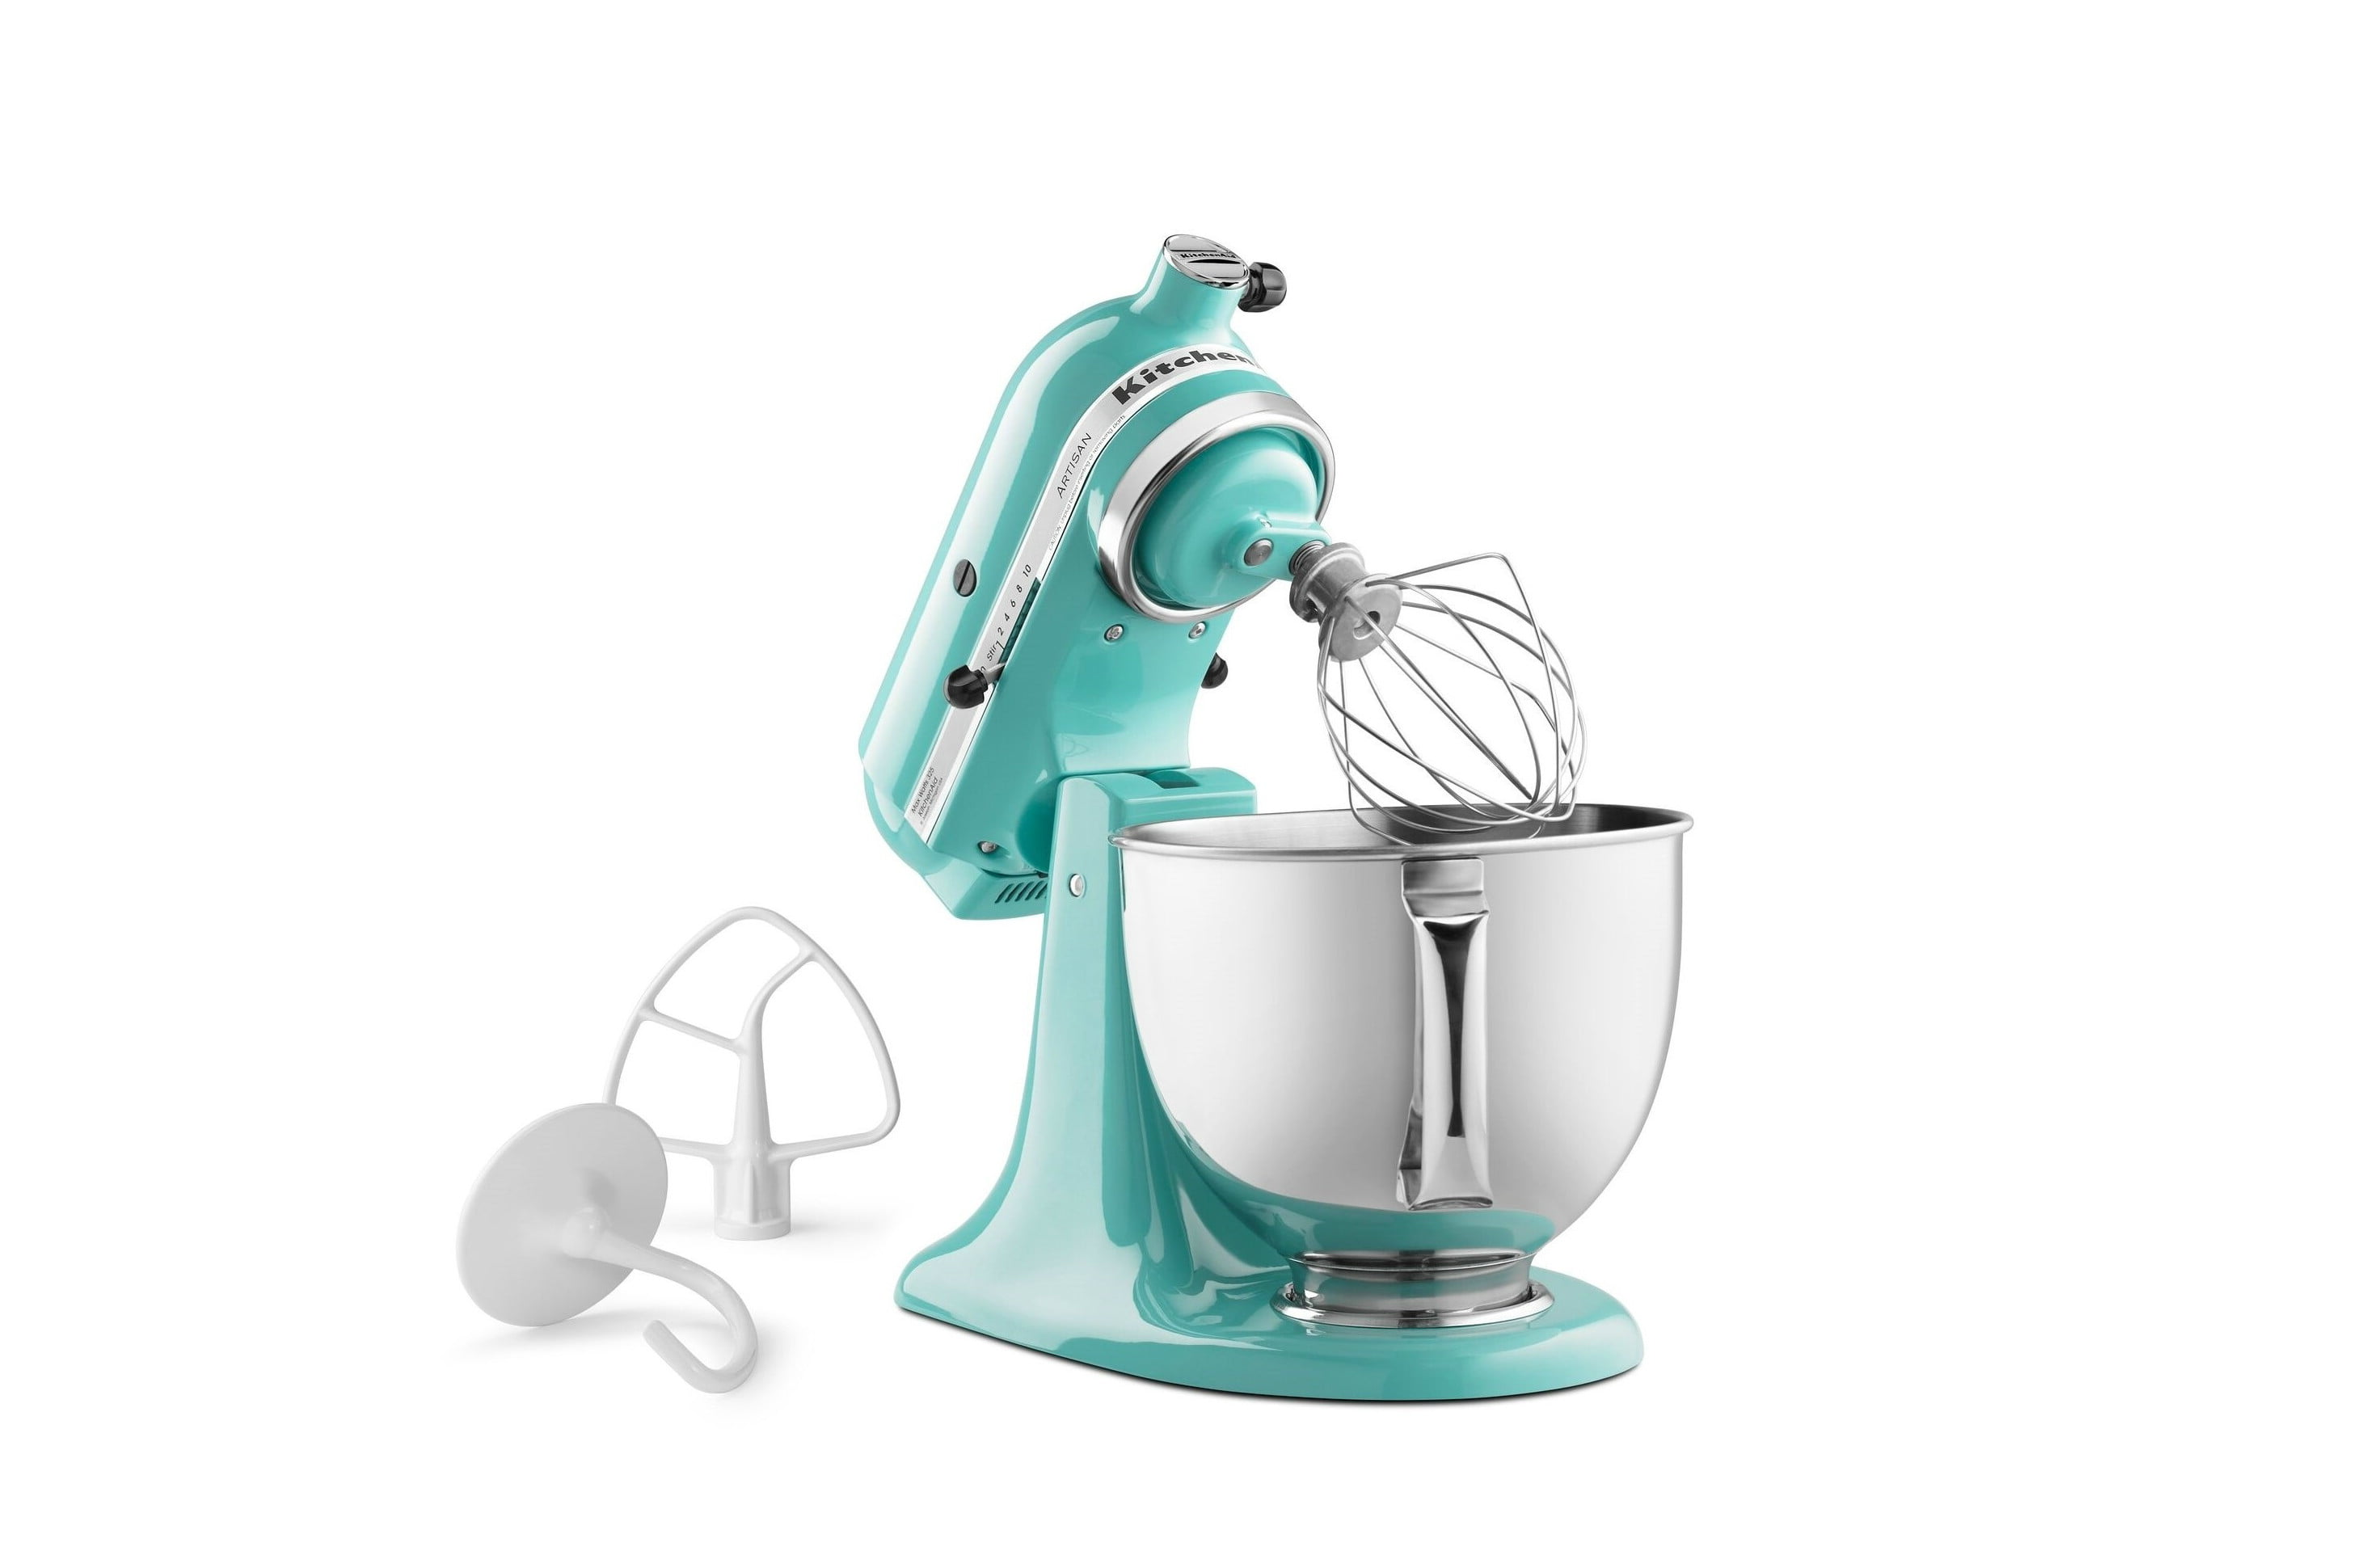 Walmart chops prices of KitchenAid stand and hand mixers for Prime Day 2019